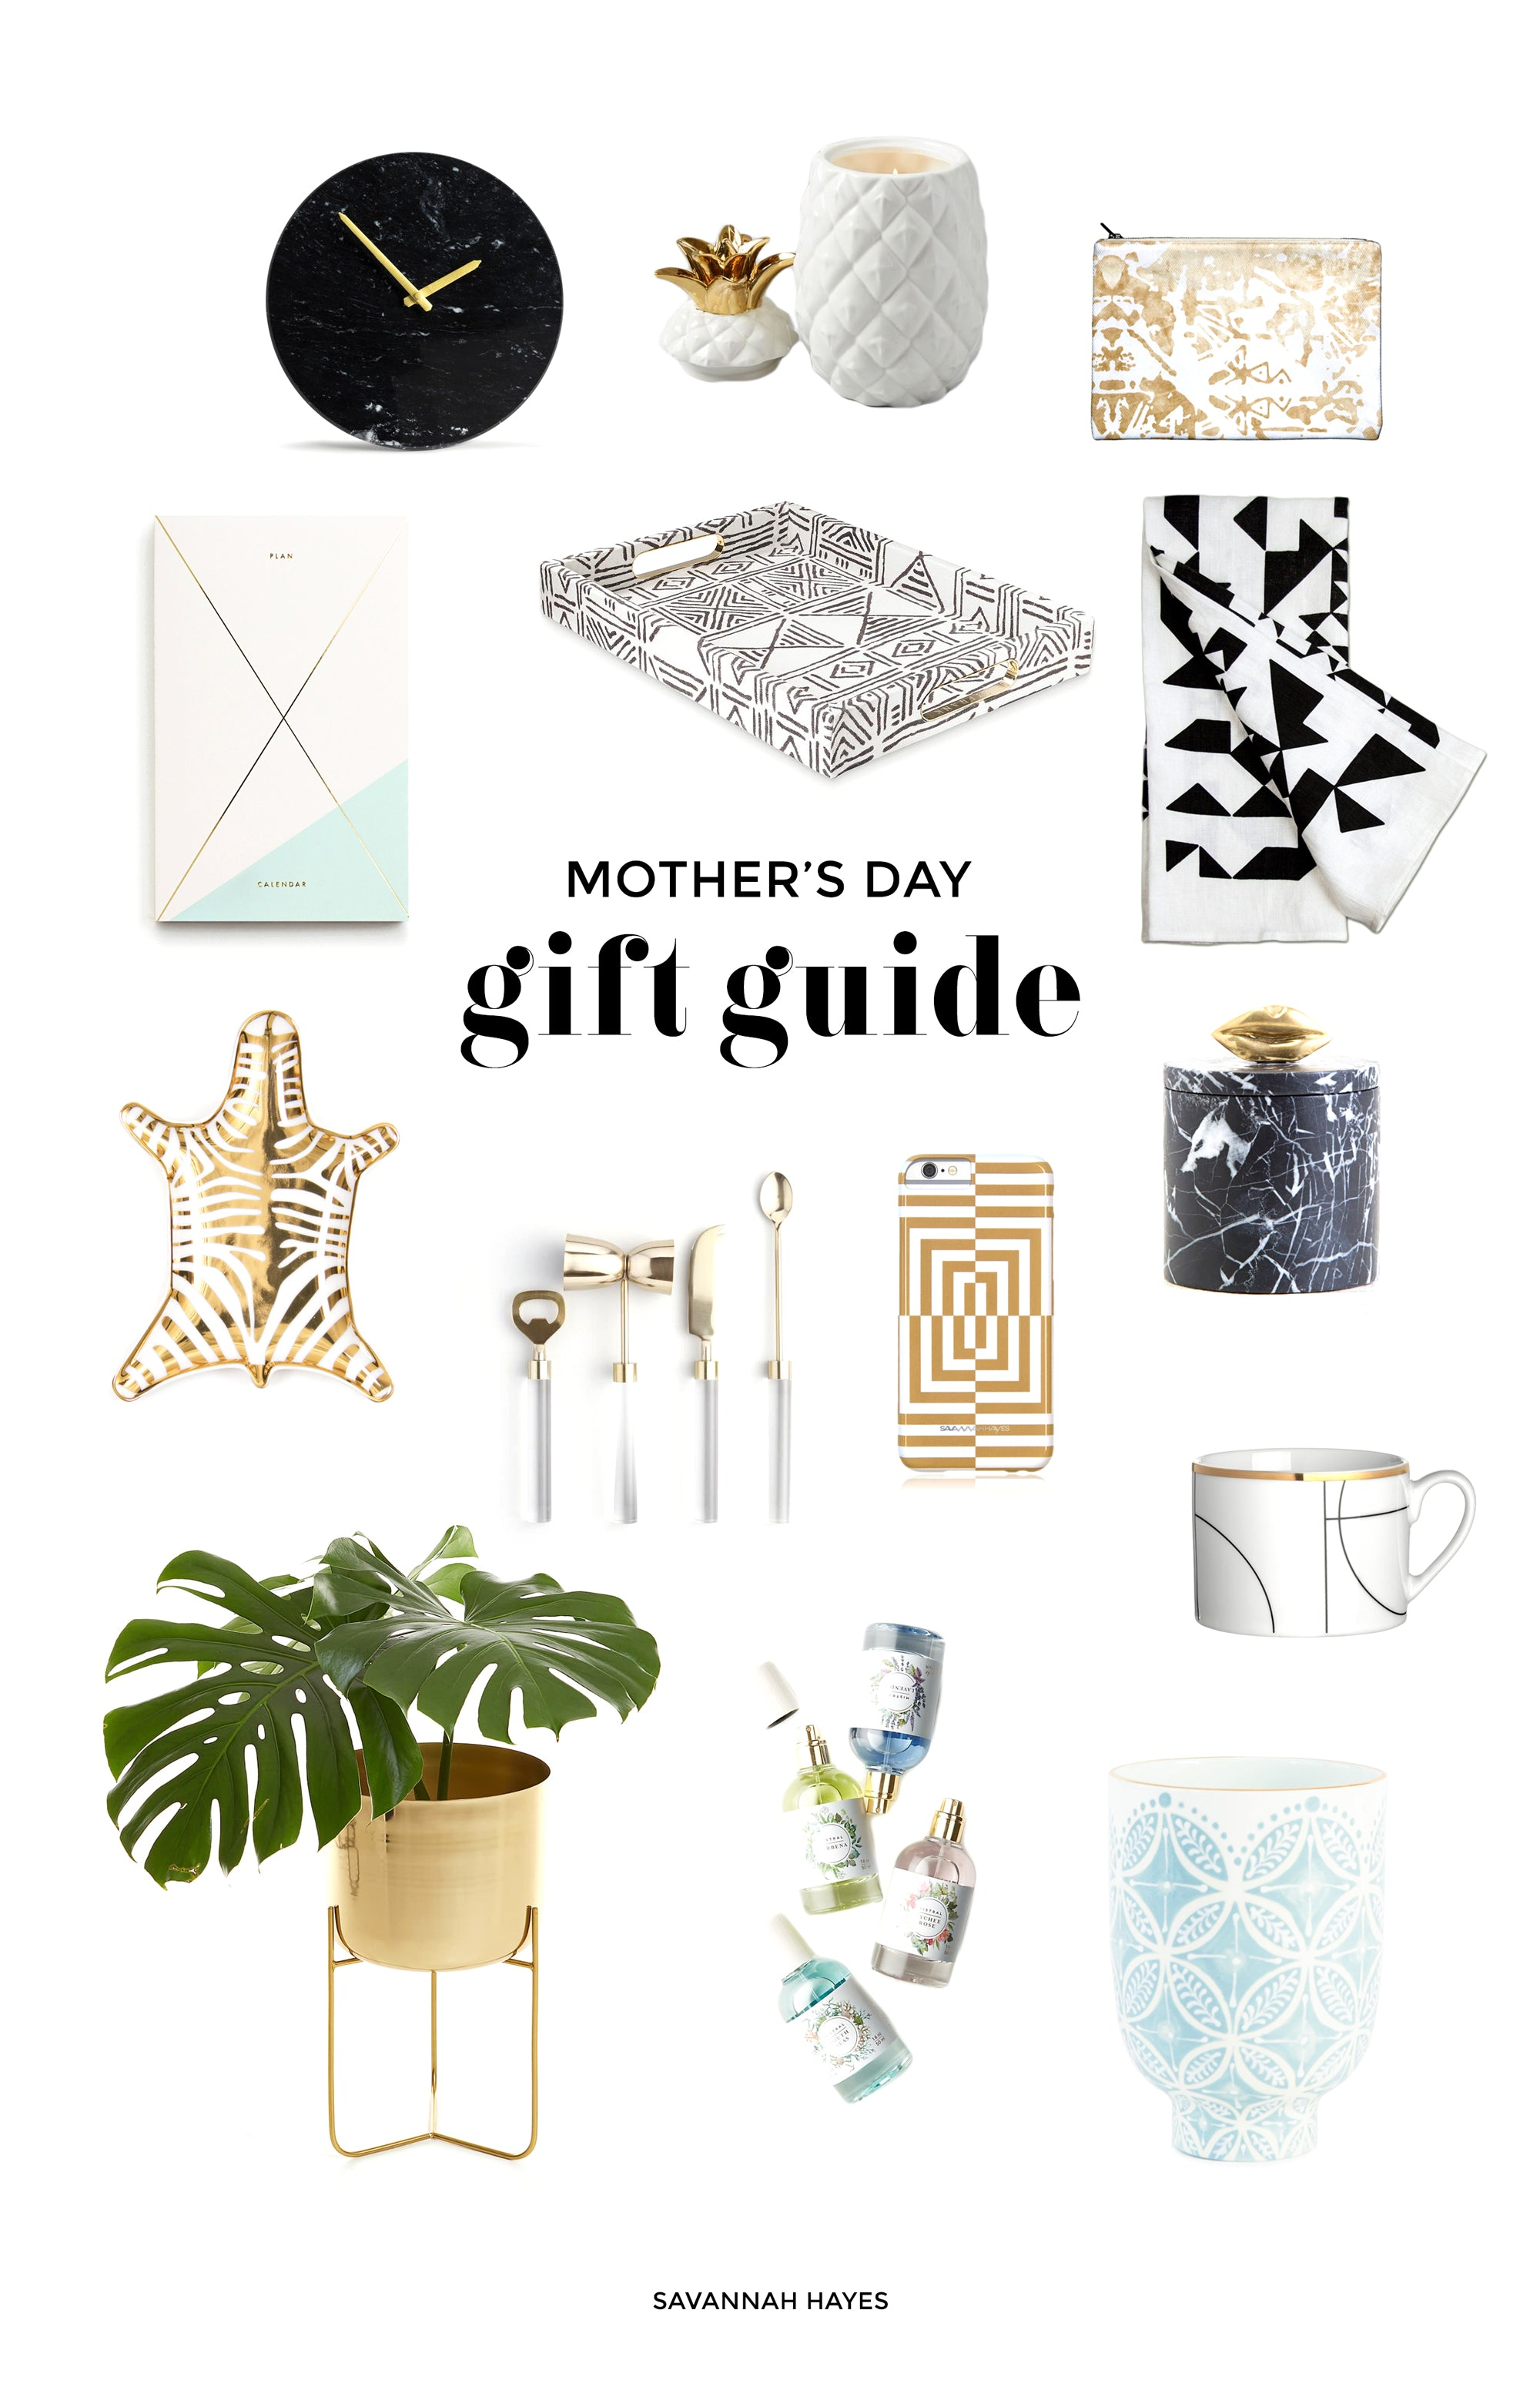 Savannah Hayes Mother's Day Gift Guide